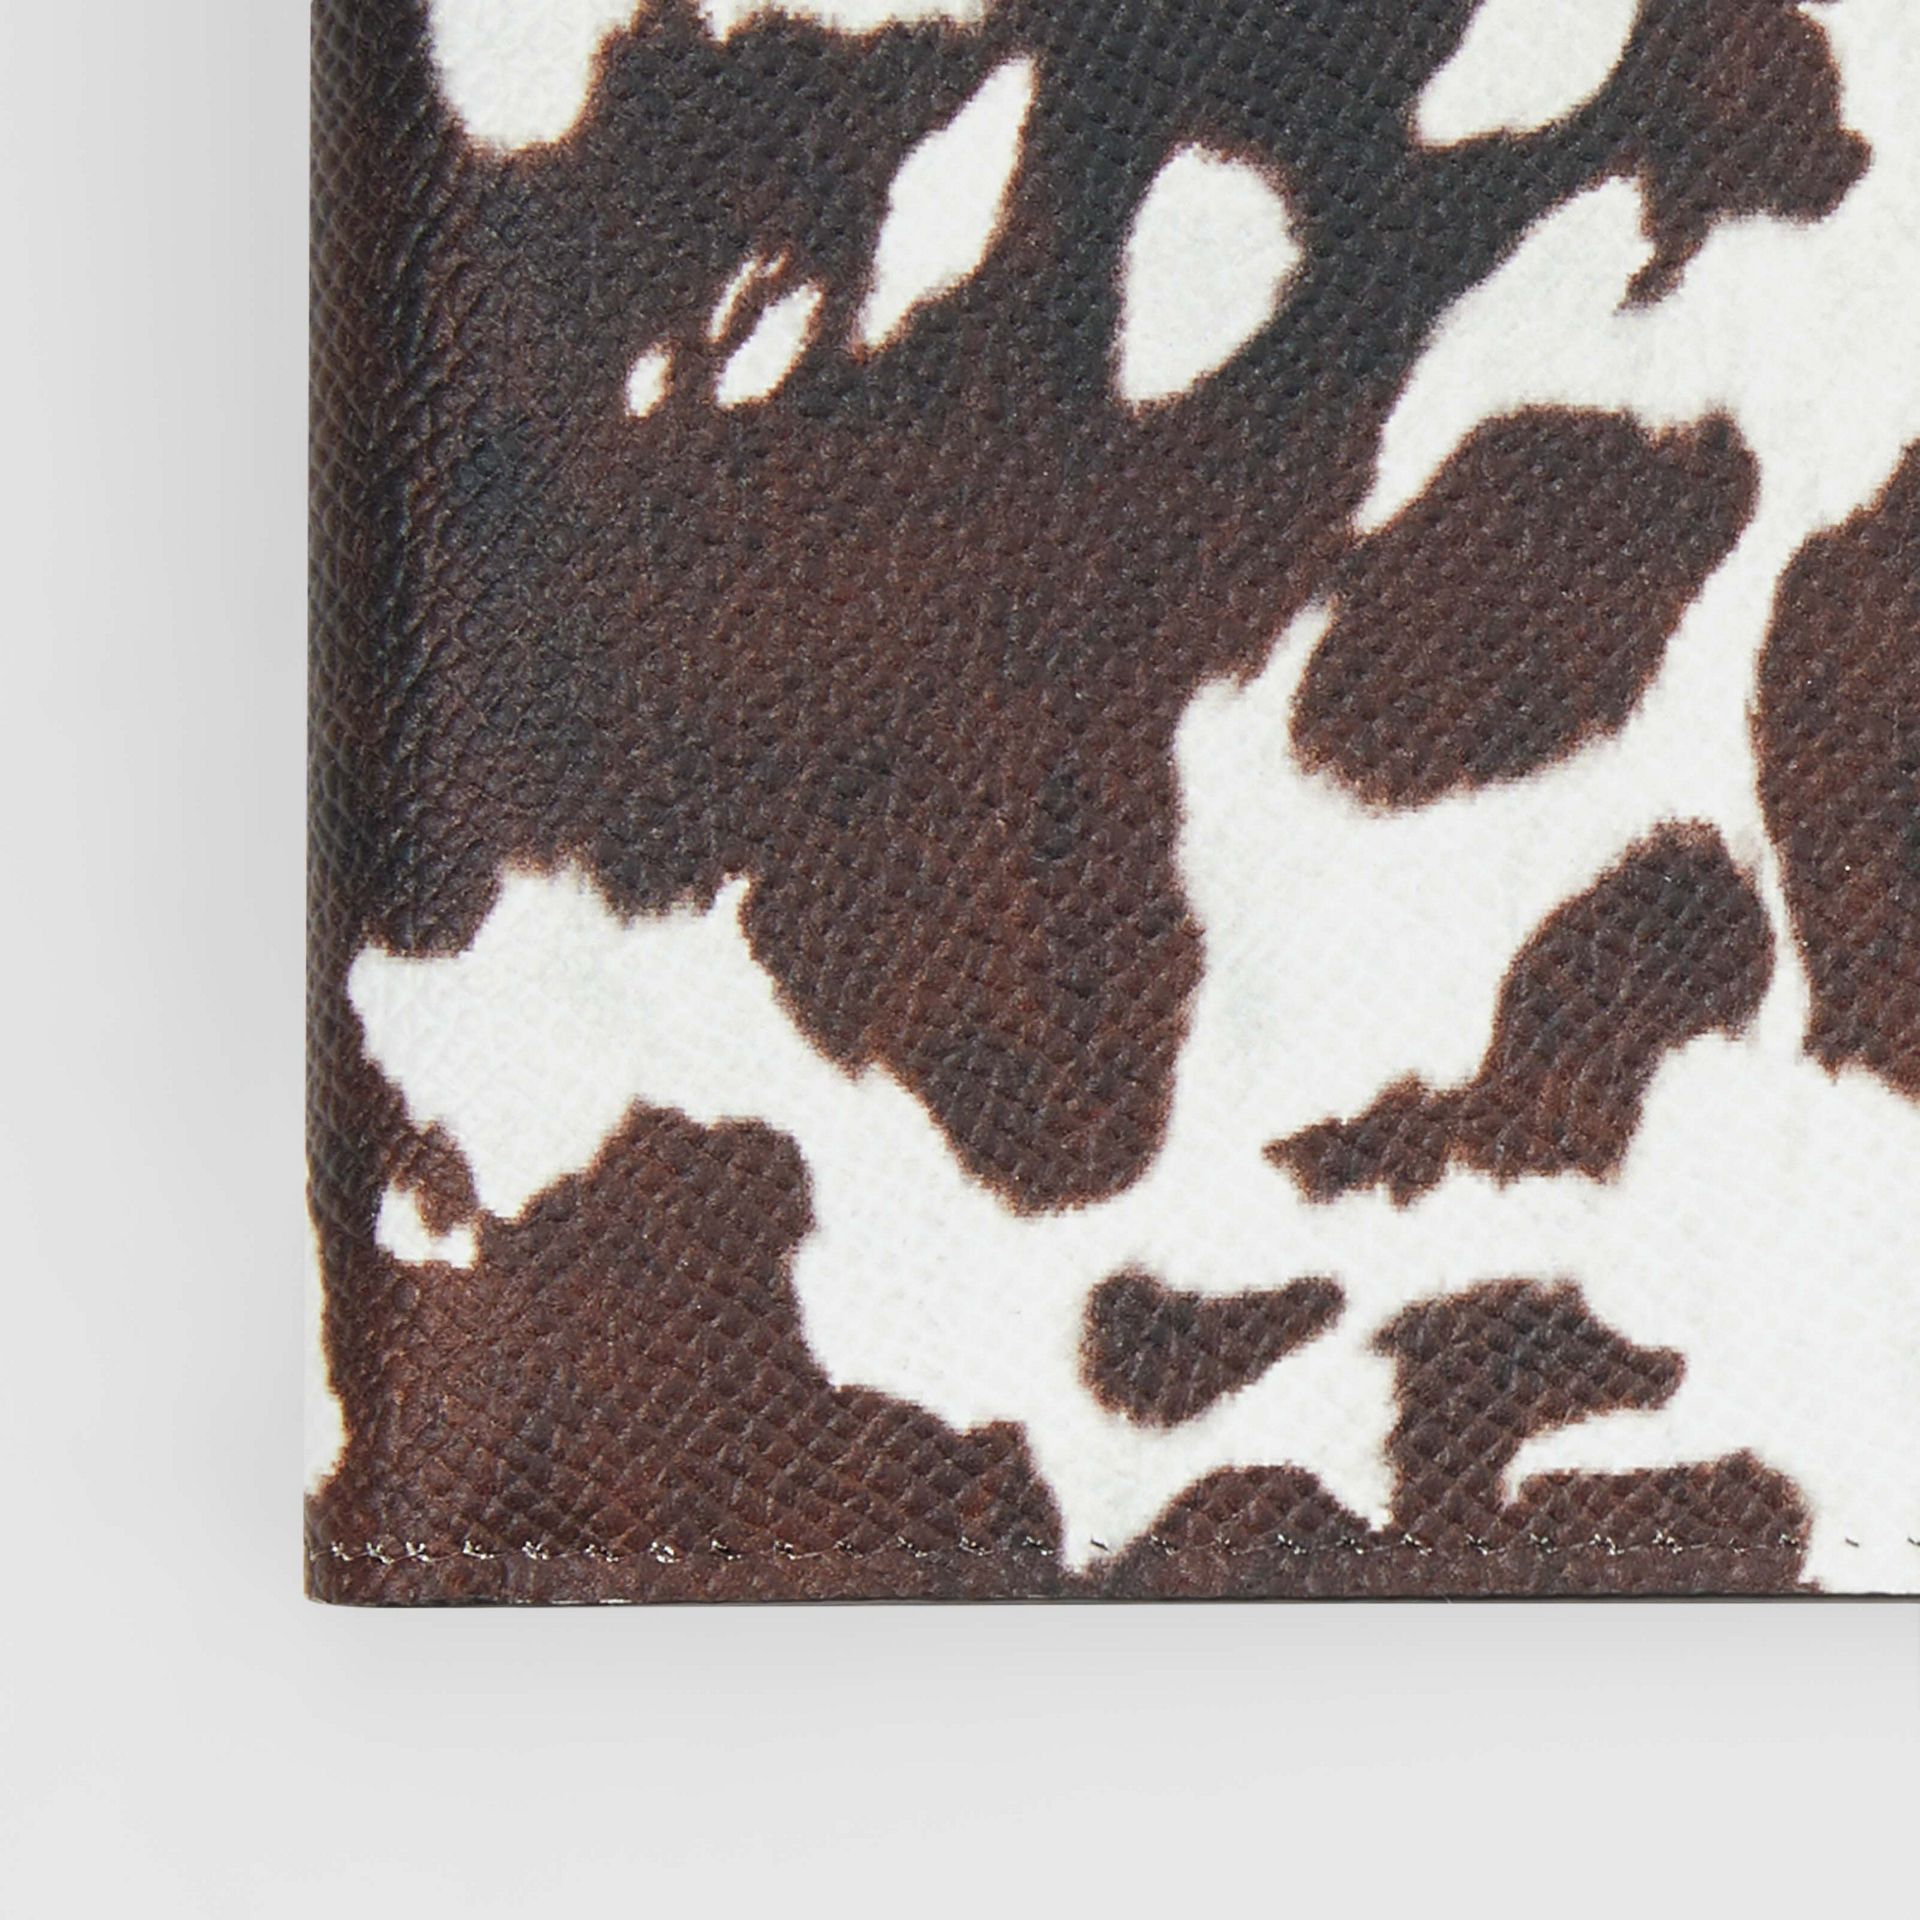 Cow Print Leather International Bifold Wallet in Black/white - Men | Burberry Australia - gallery image 1